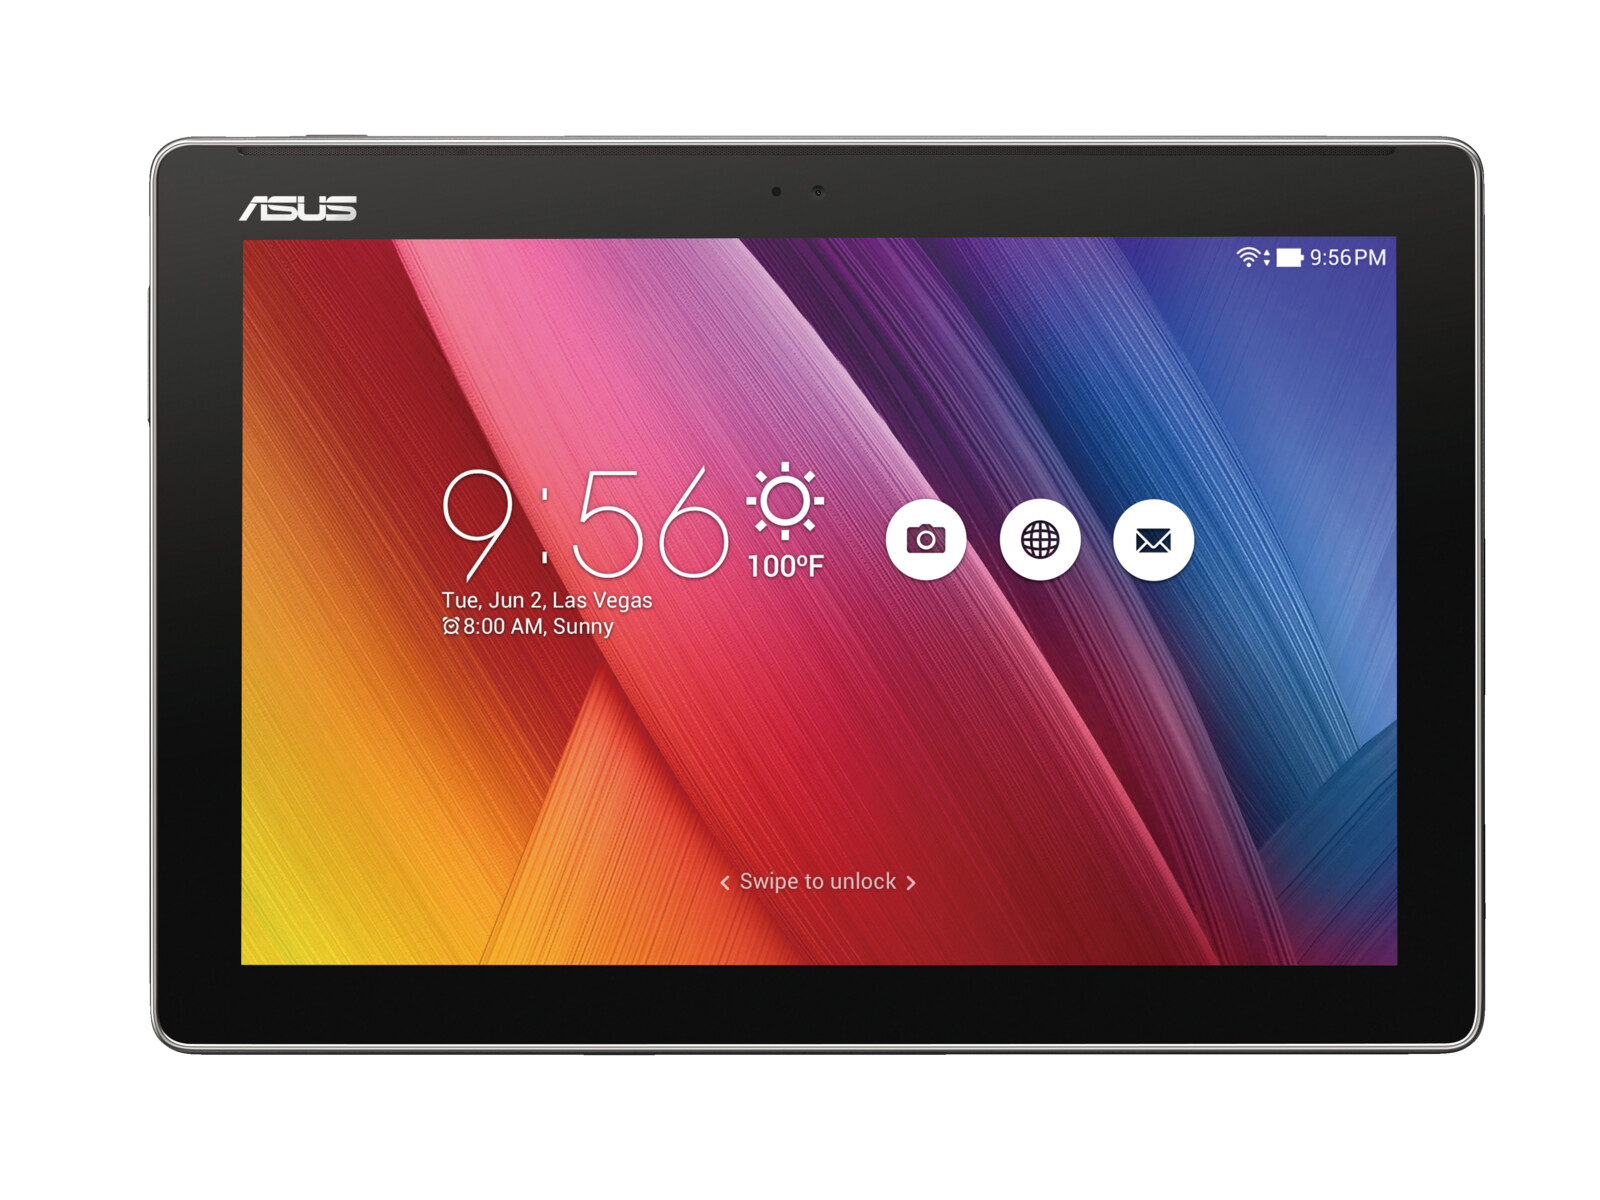 ASUS-ZenPad-10-Z300M-Tablet-mit-10-1-Zoll-128-GB-Speicher-2-GB-RAM-Android